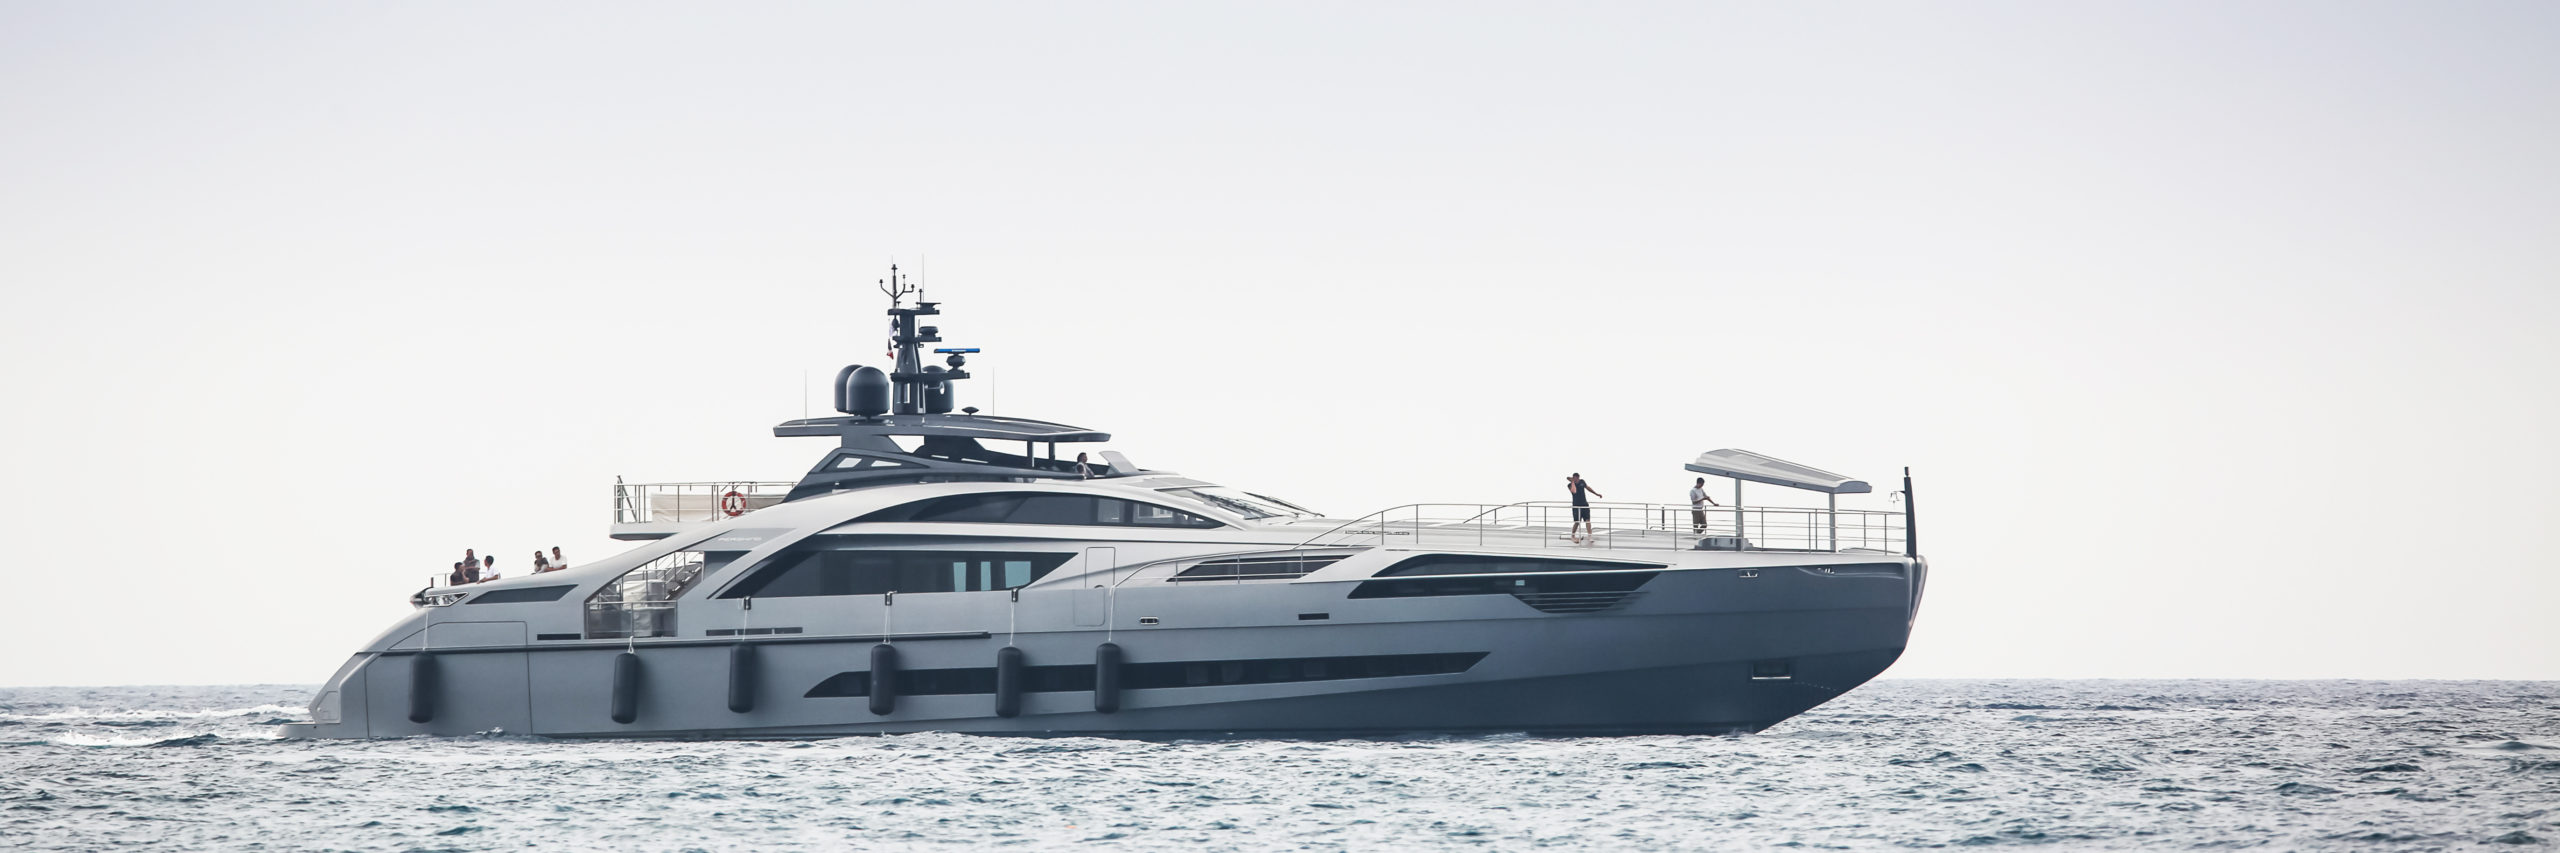 Pershing 140 Yachts for Sale